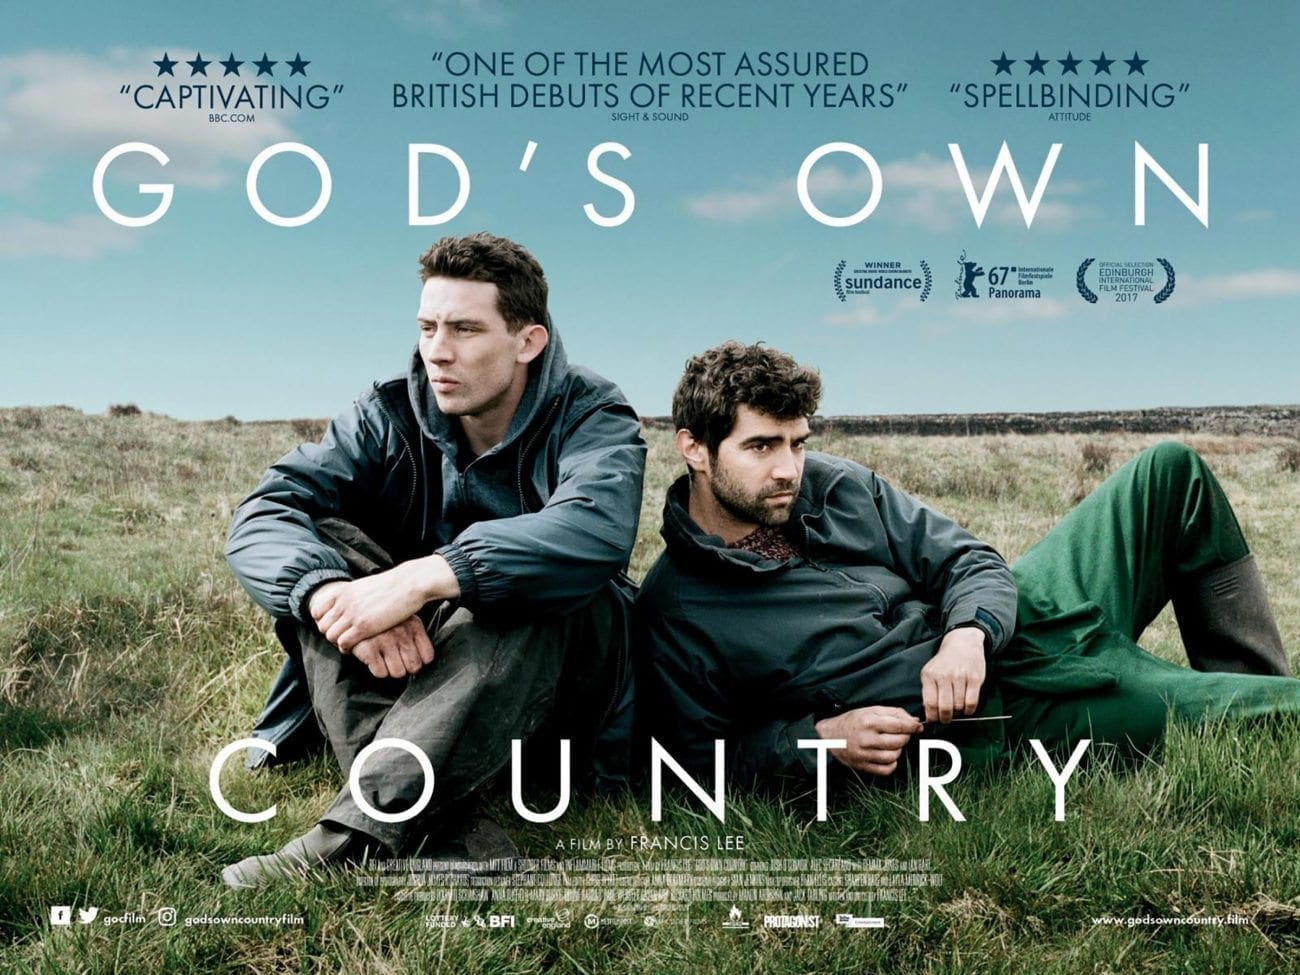 Picturehouse Entertainment has premiered the first trailer for Francis Lee's God's Own Country, set for theatrical release this September in the UK.